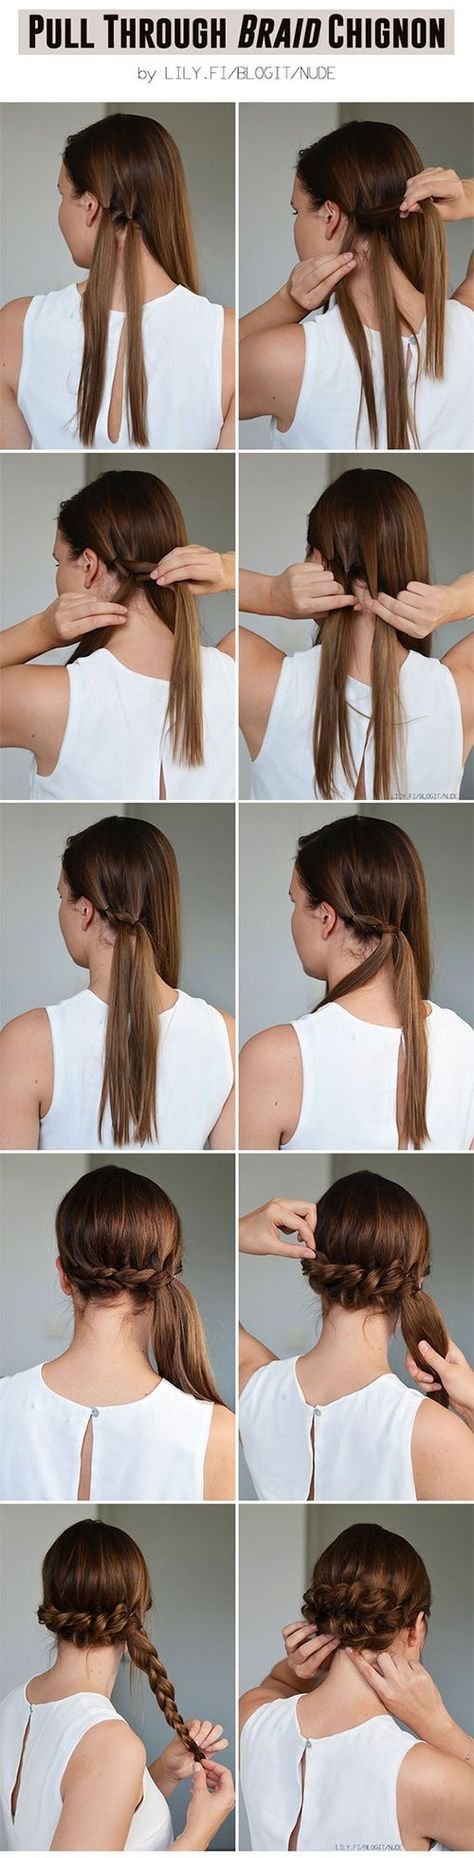 winter formal hair styles 25 best ideas about hair waves on 9531 | b8b128bc94705f40e624896e767a4ba7 easy formal hairstyles for long hair prom hair do